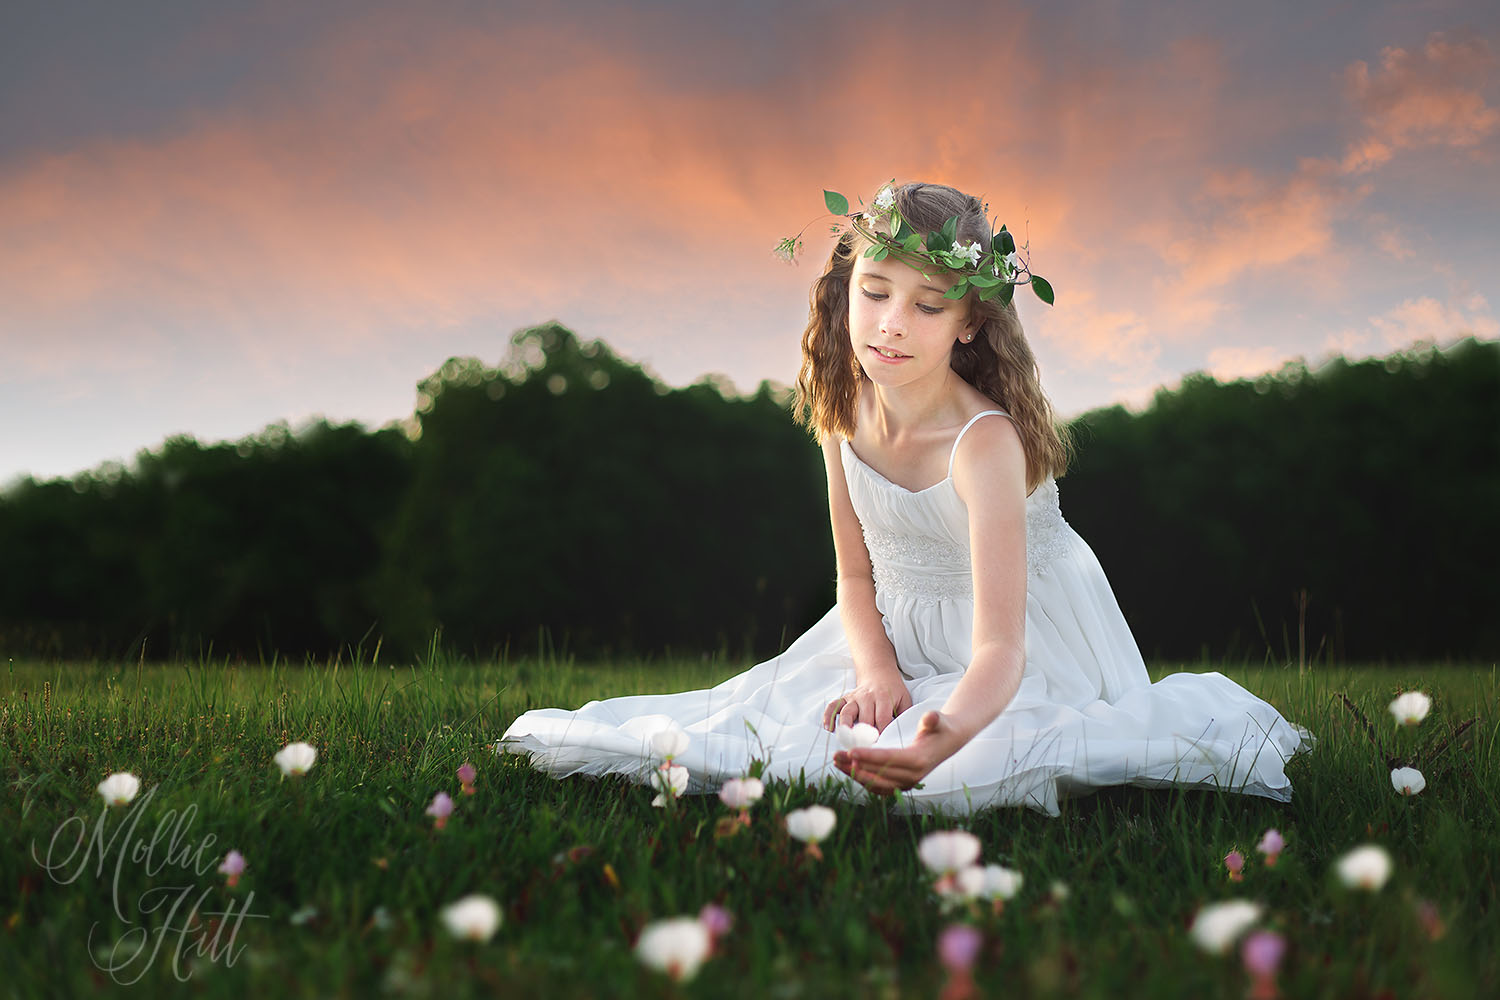 Fairy princess at sunset in a flower field with white floral crown and gown